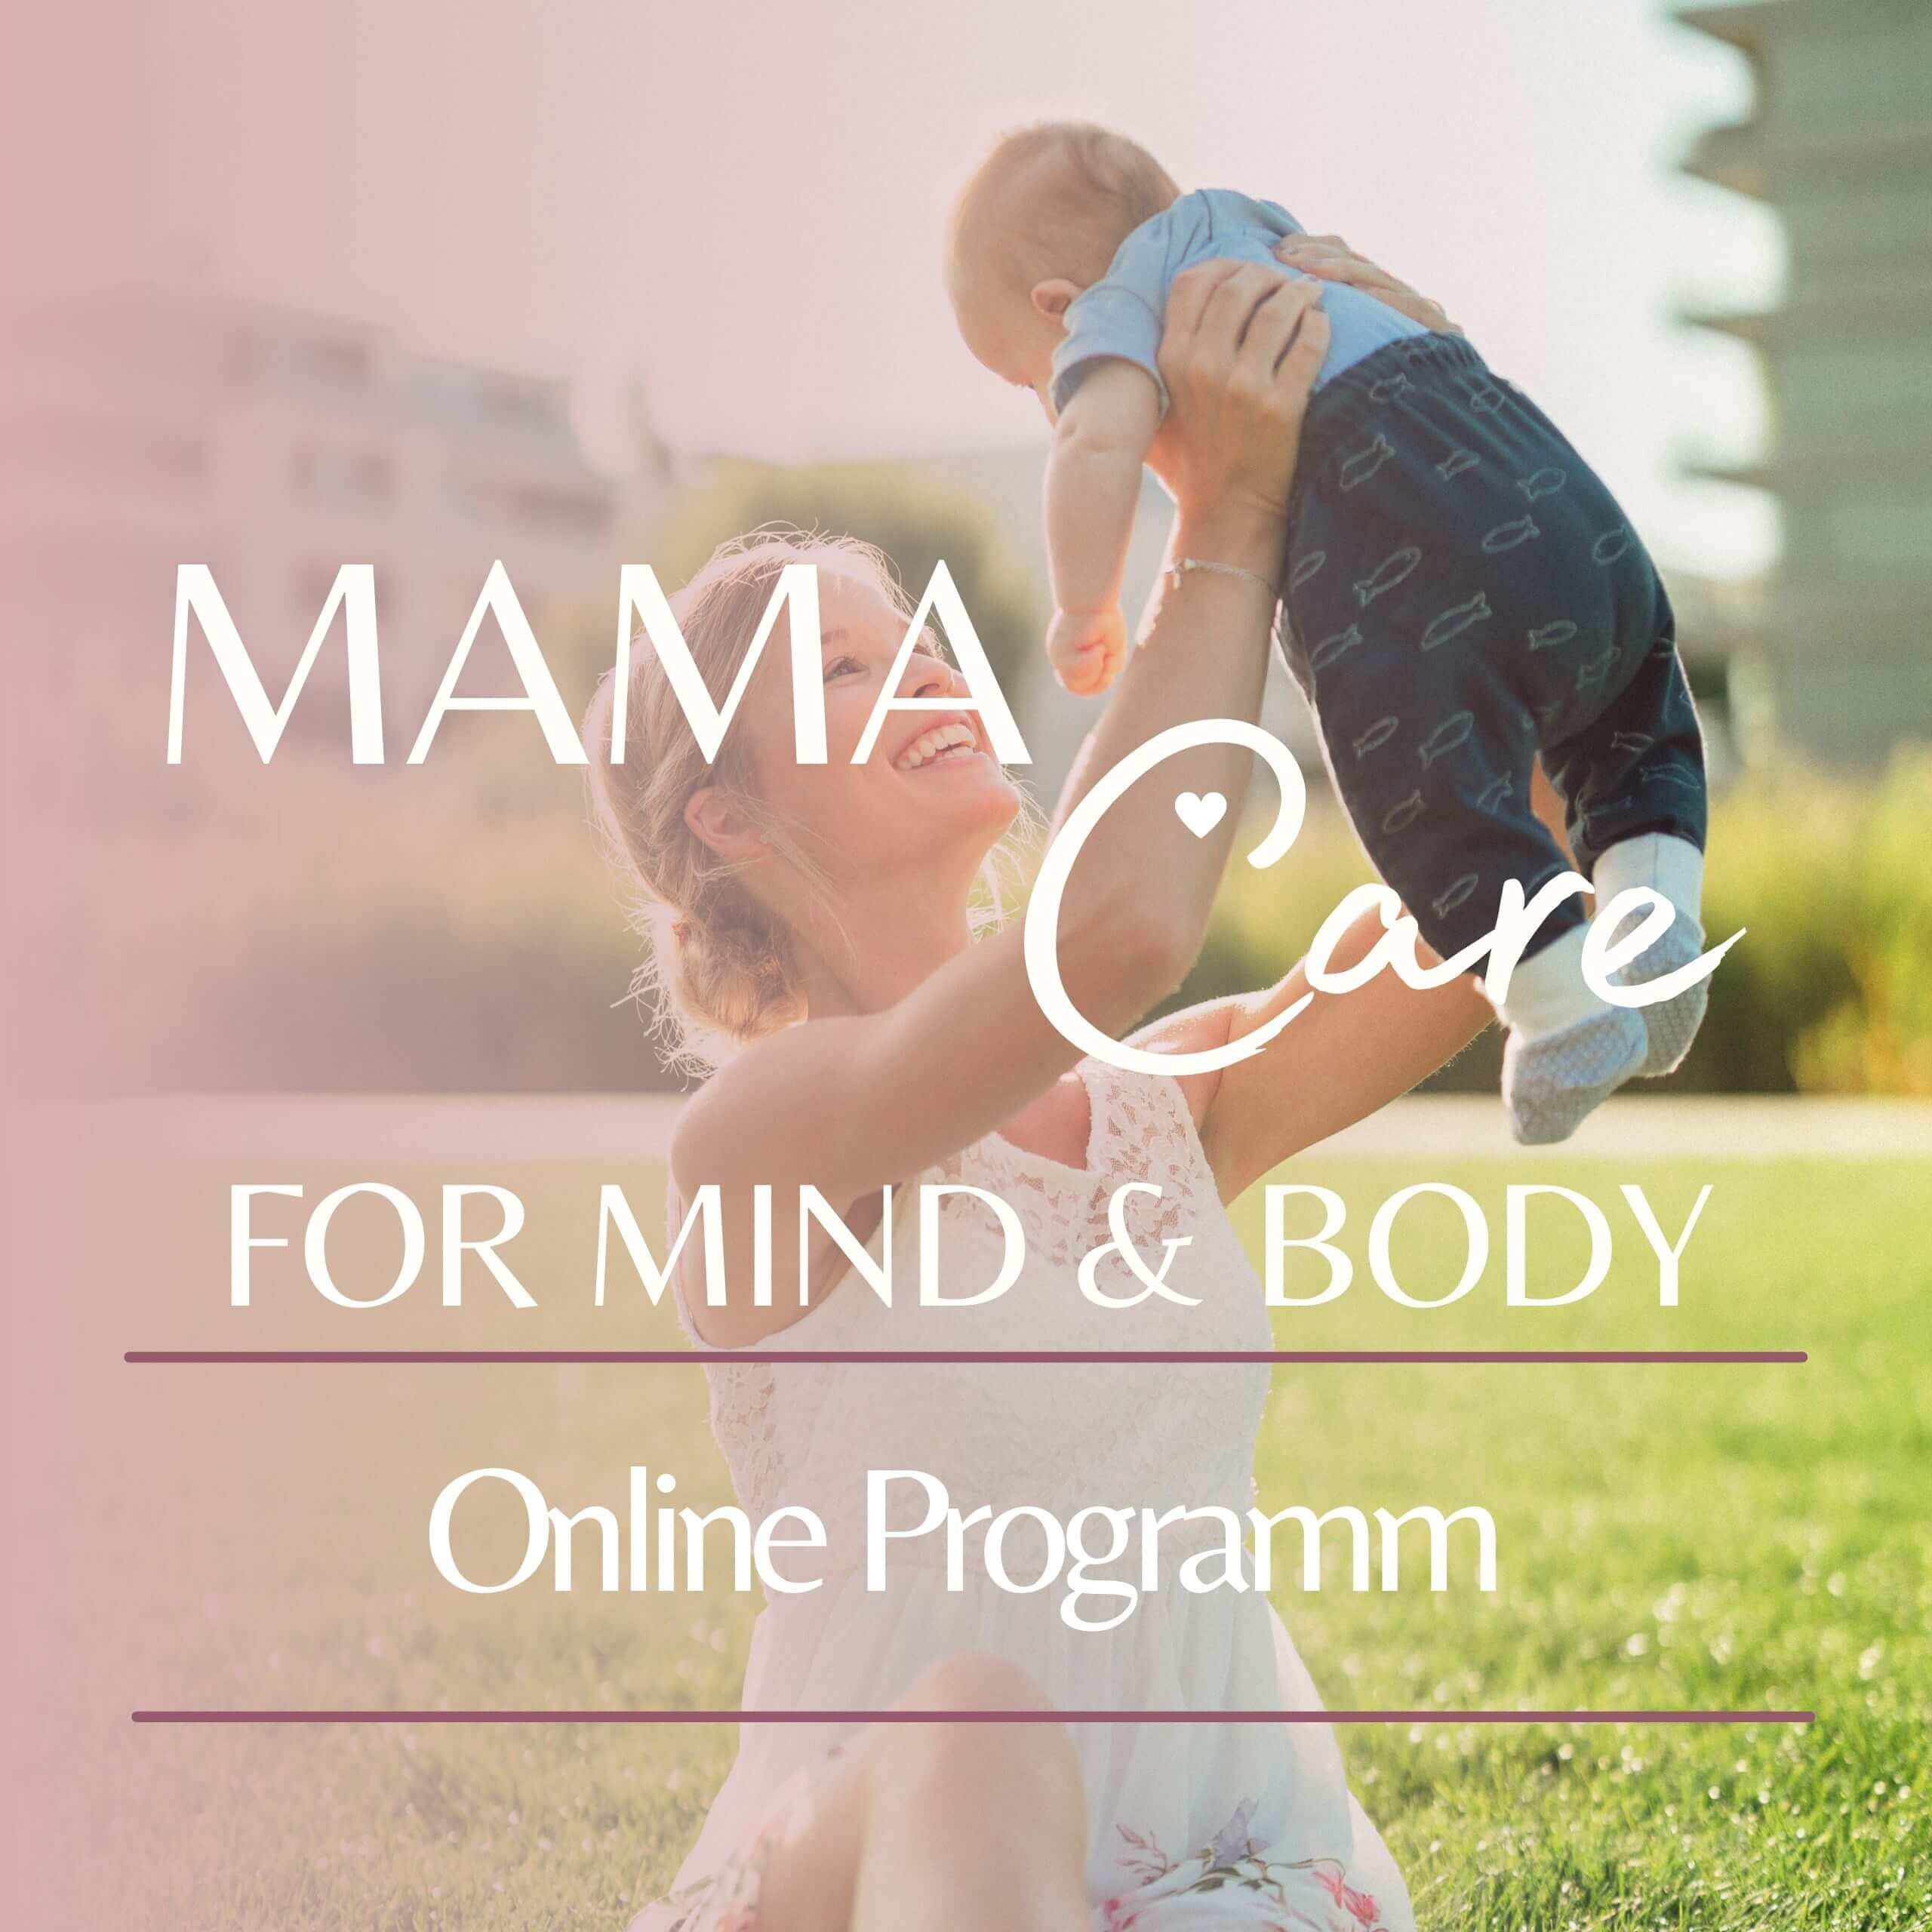 Mama_Care_For_Mind_And_Body_Online_Programm_Gesundheit_Stress_Management